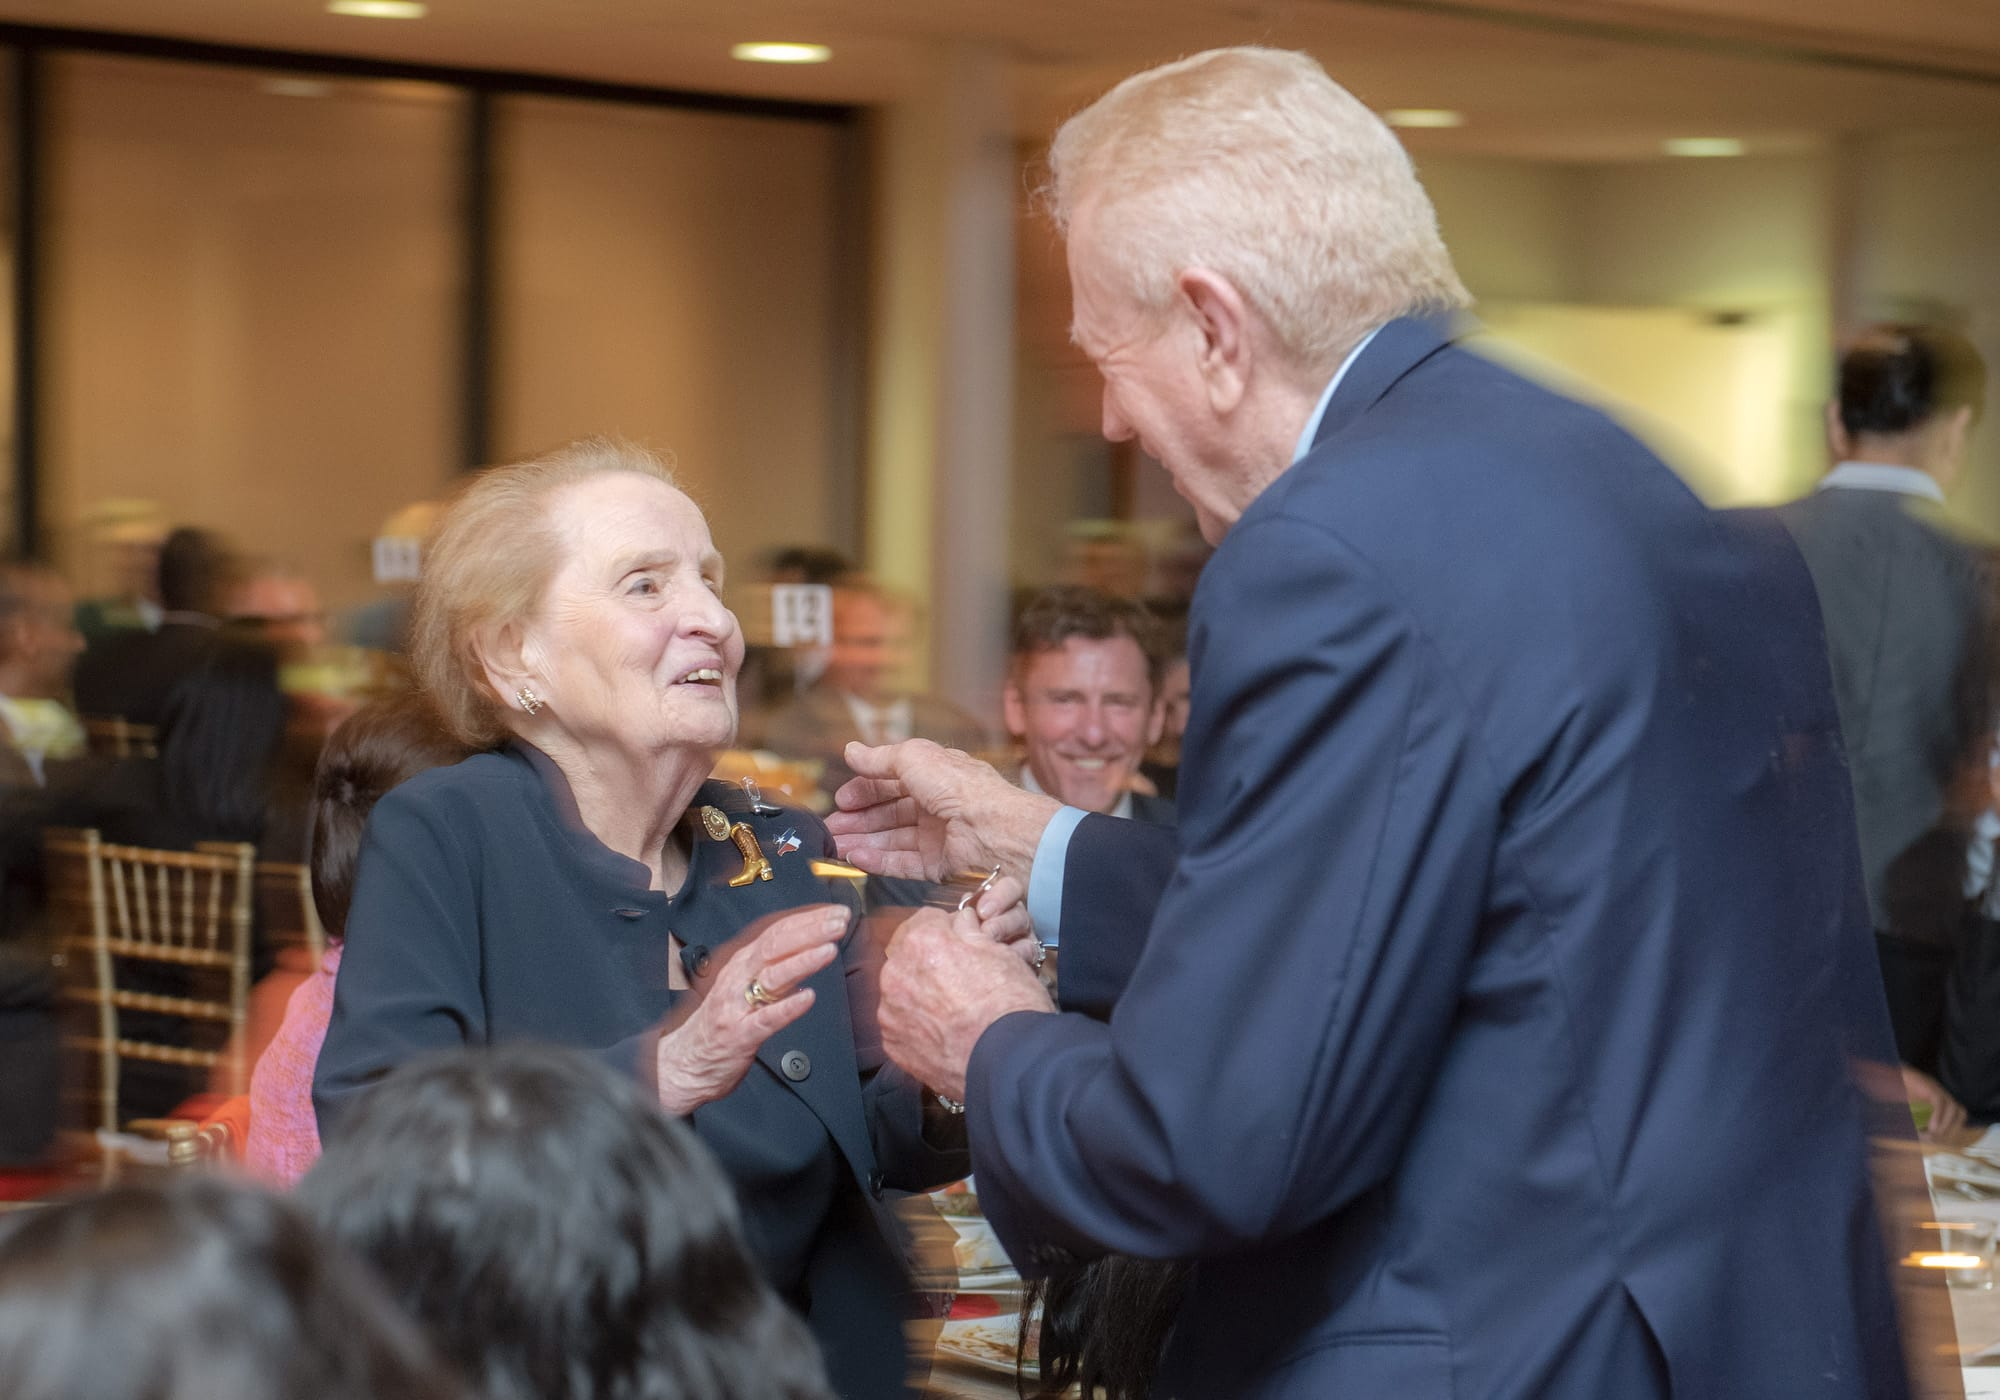 Ben Barnes presents Madeleine Albright with a Texas pin.